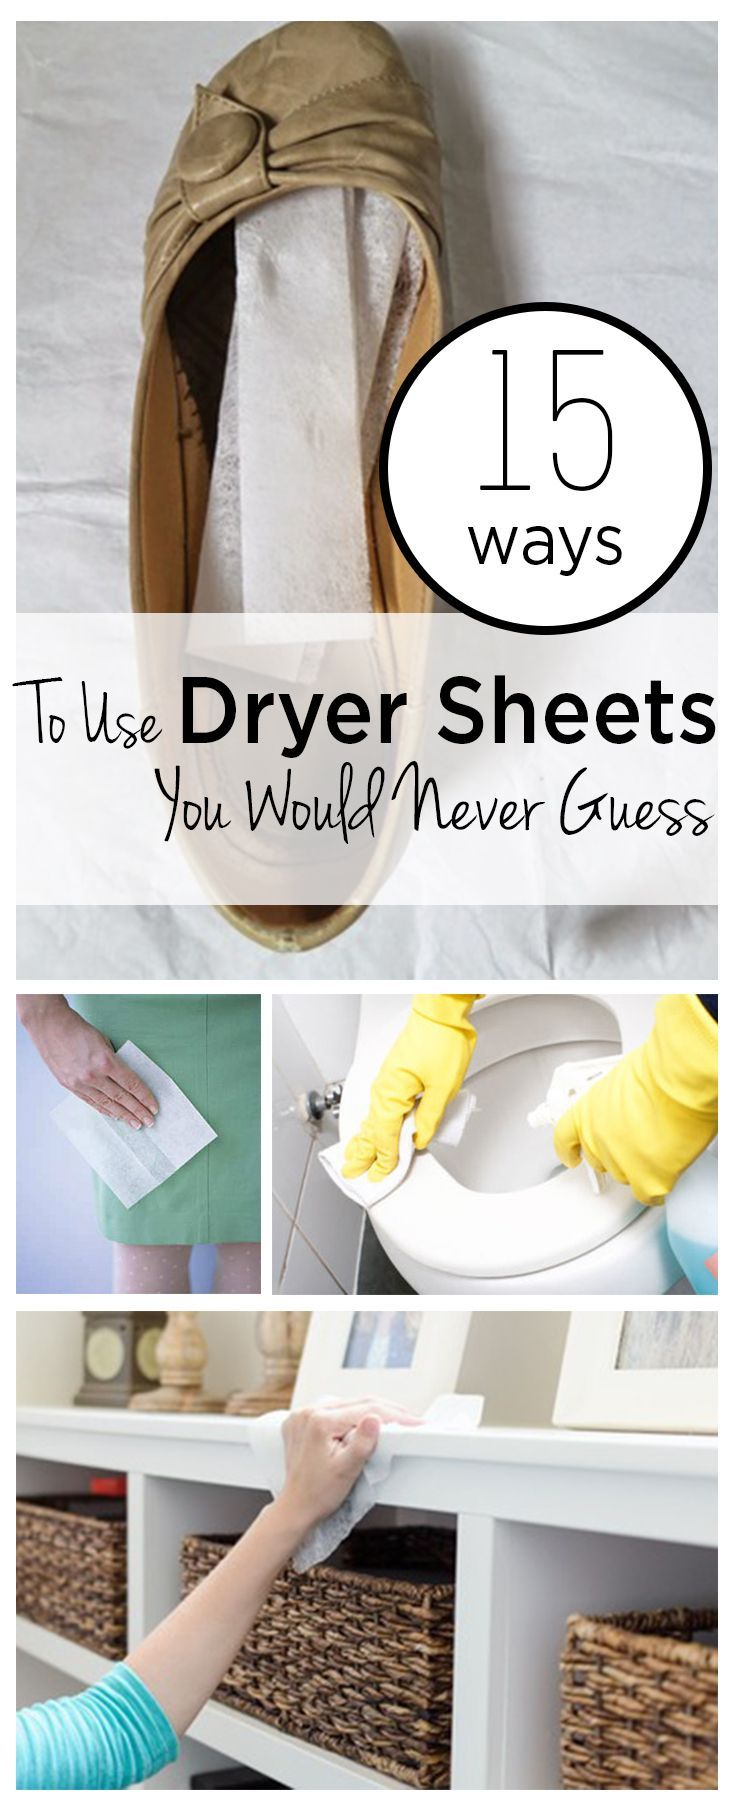 15 Ways To Use Dryer Sheets That You Would Never Guess House